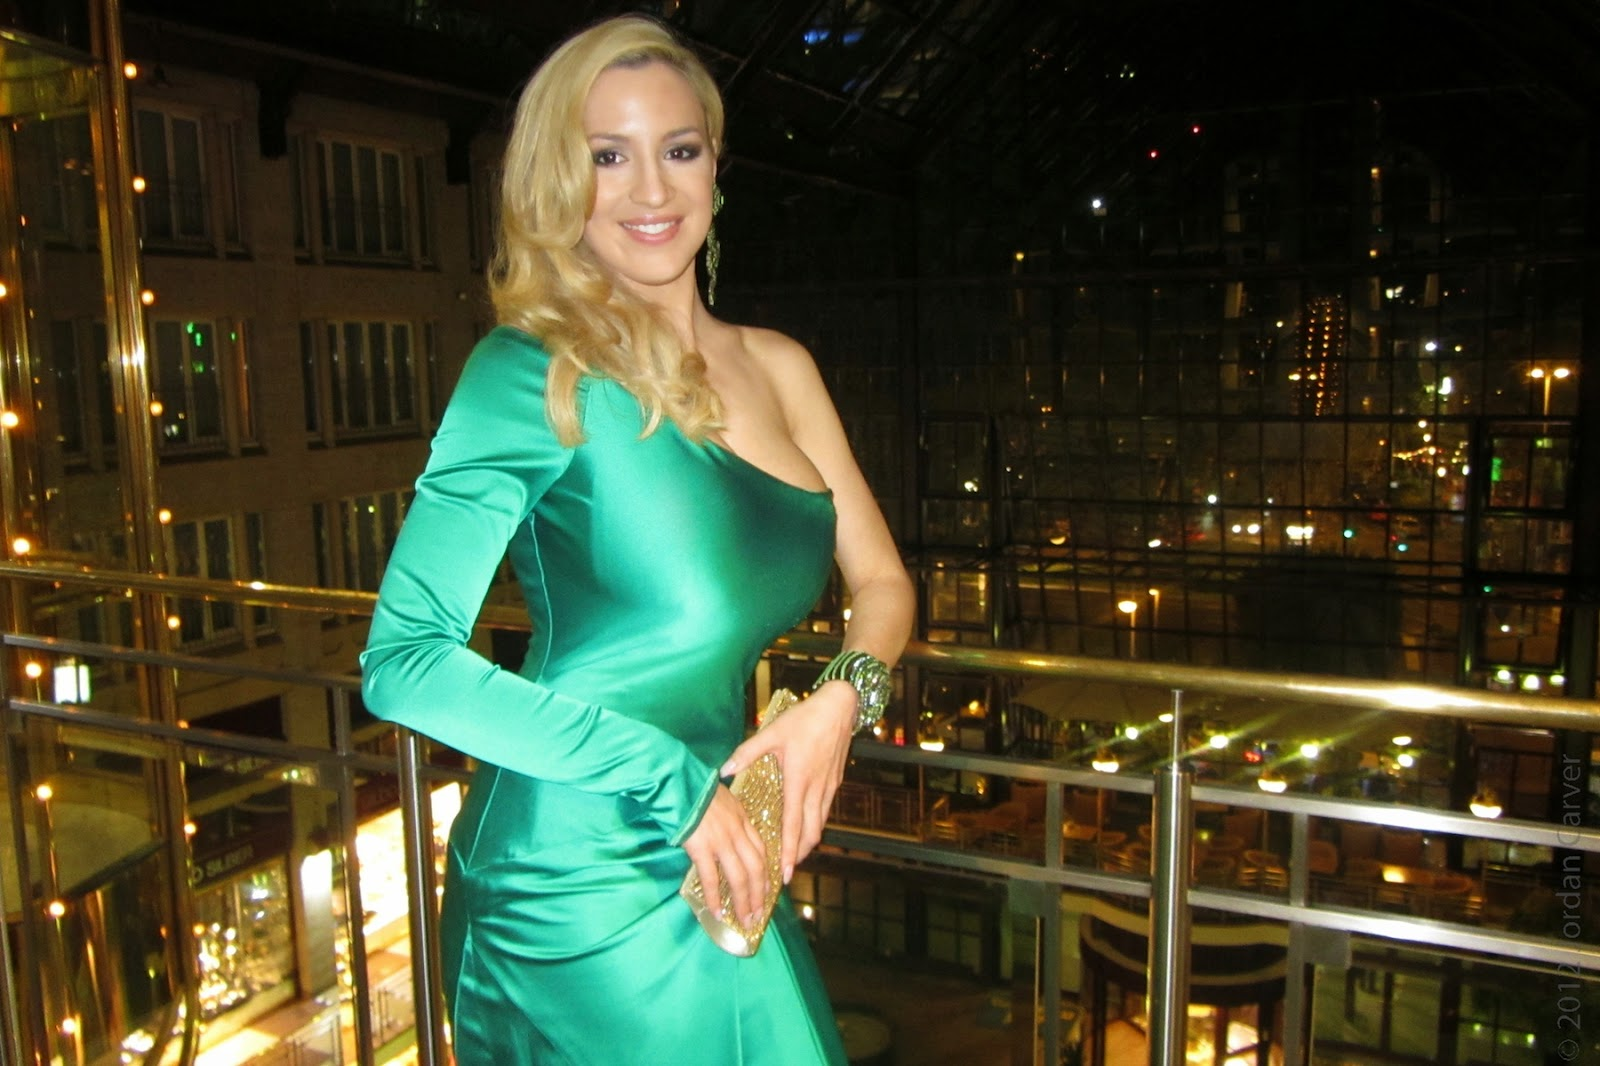 Jordan Carver Blue Gown Big Boobs Cleavage show in Shiny